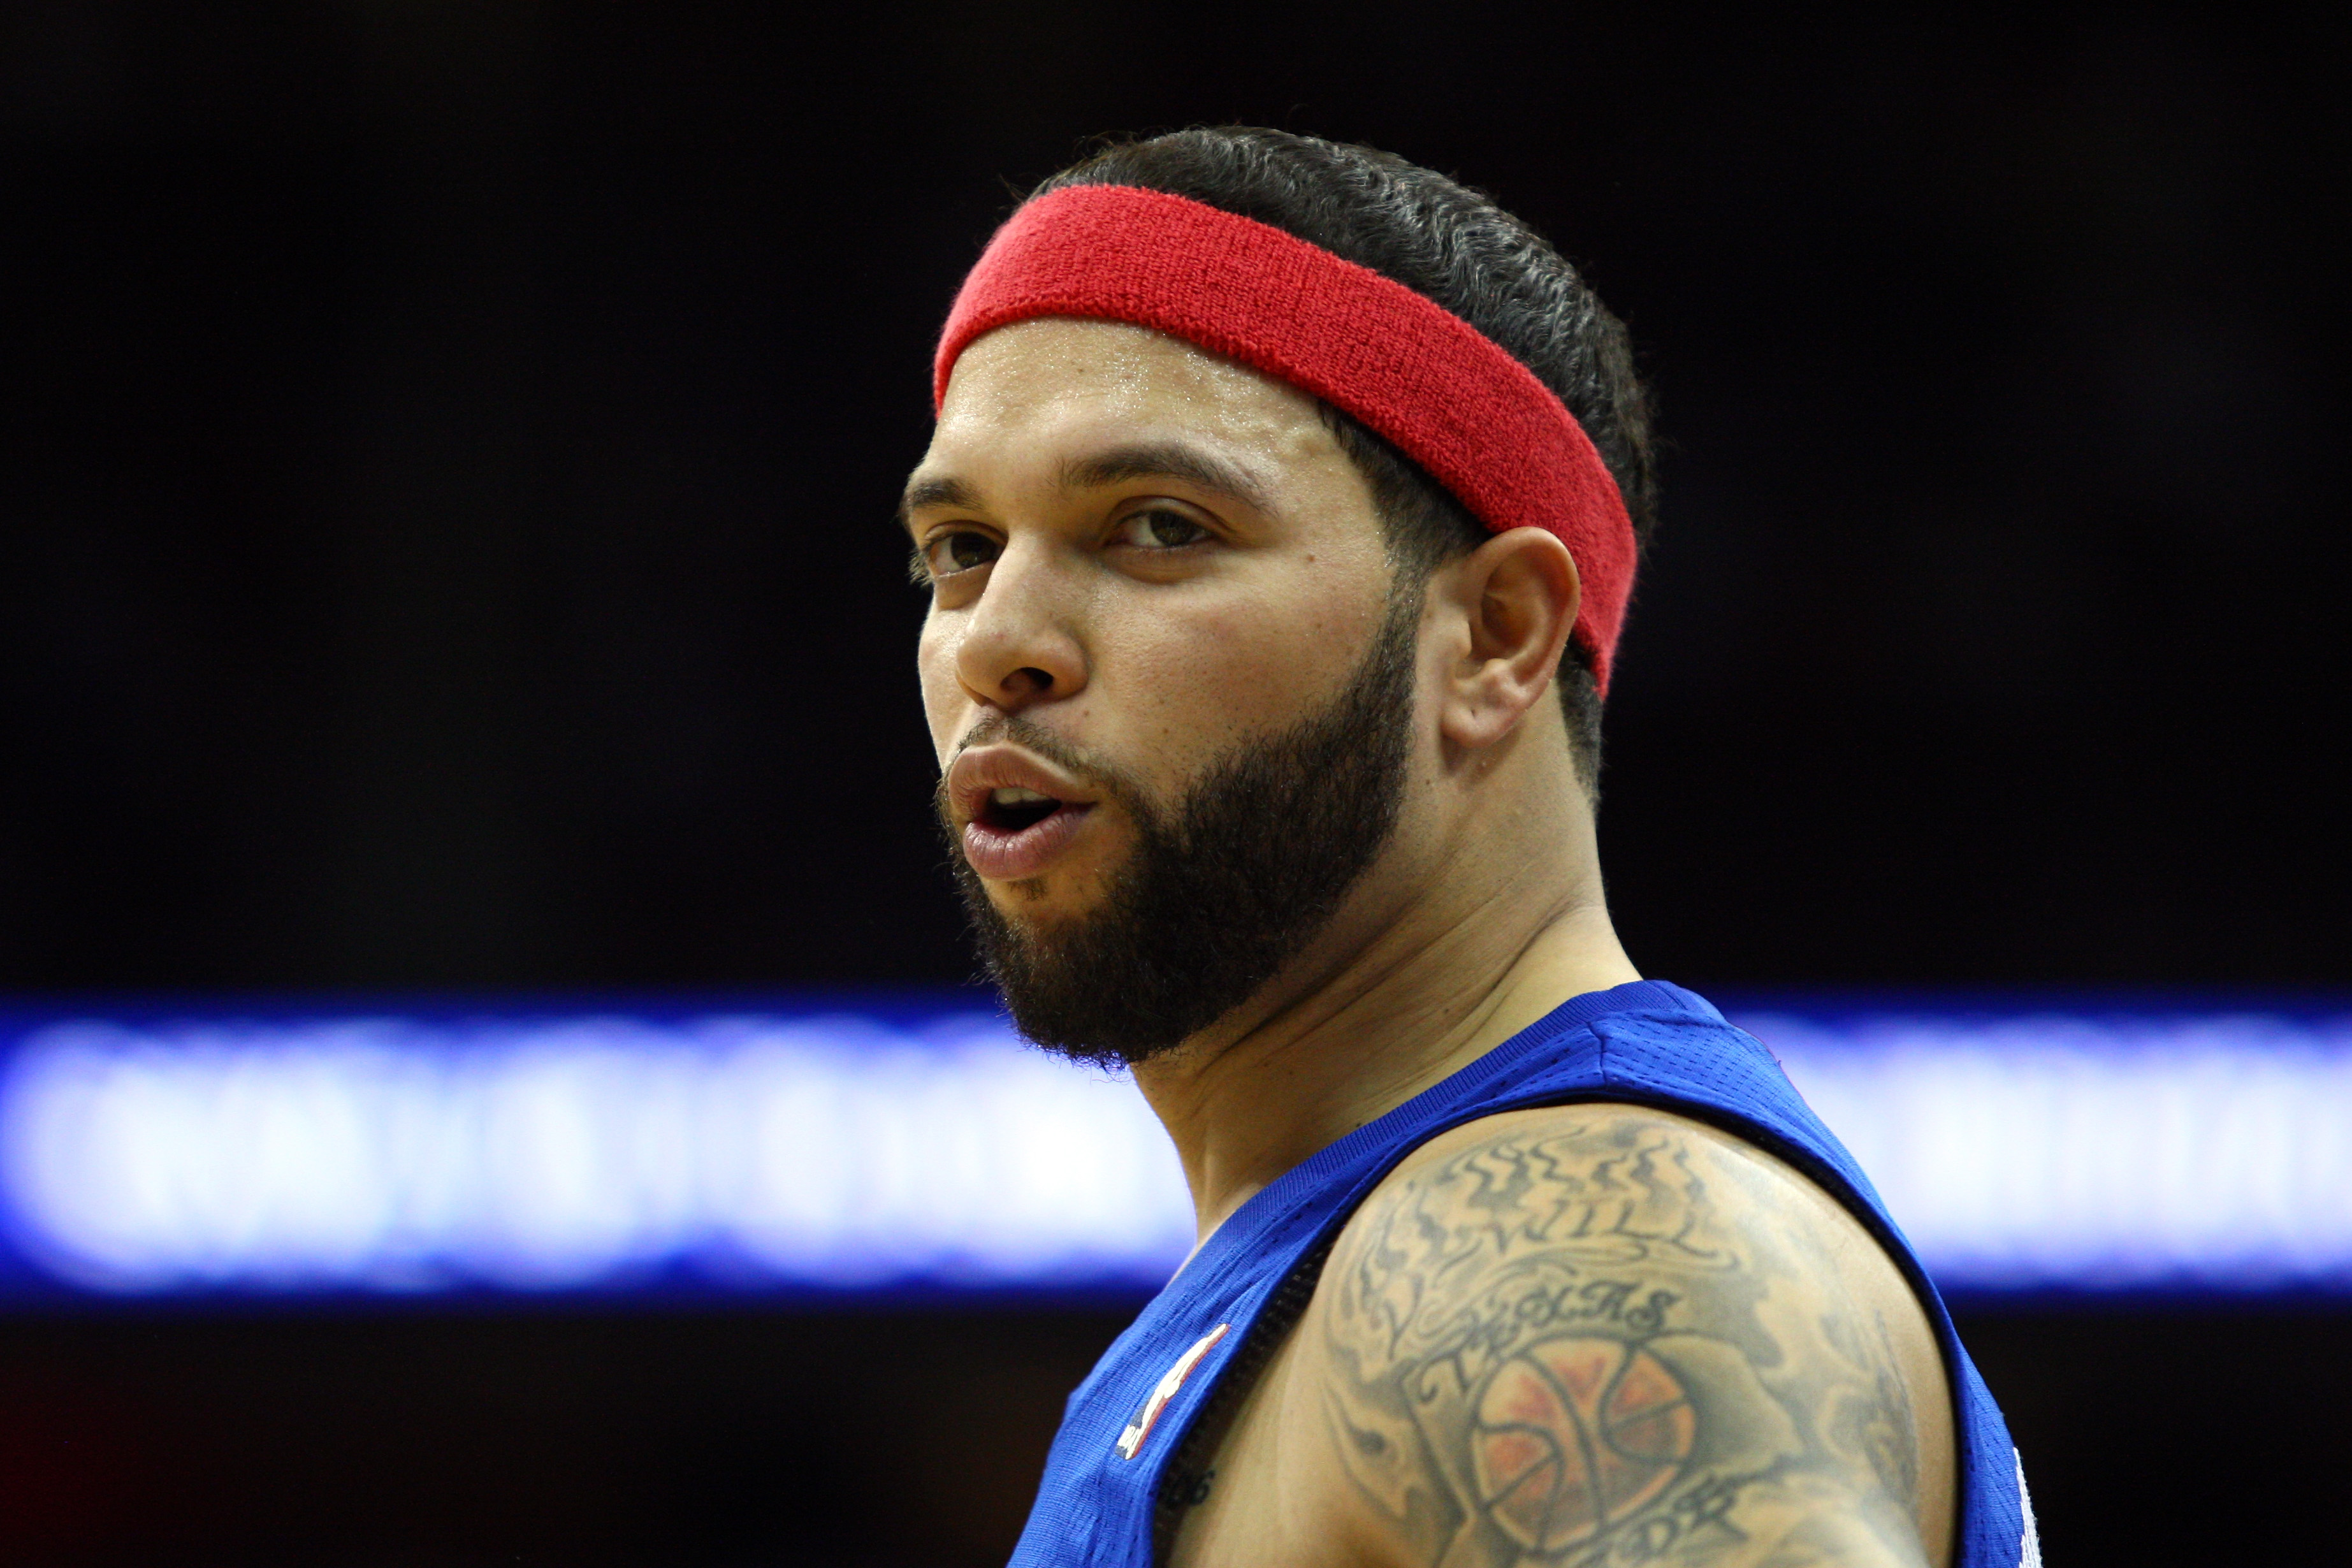 The Nets will pay Deron Williams $25 million more than what the Mavericks could offer. (Getty Images)